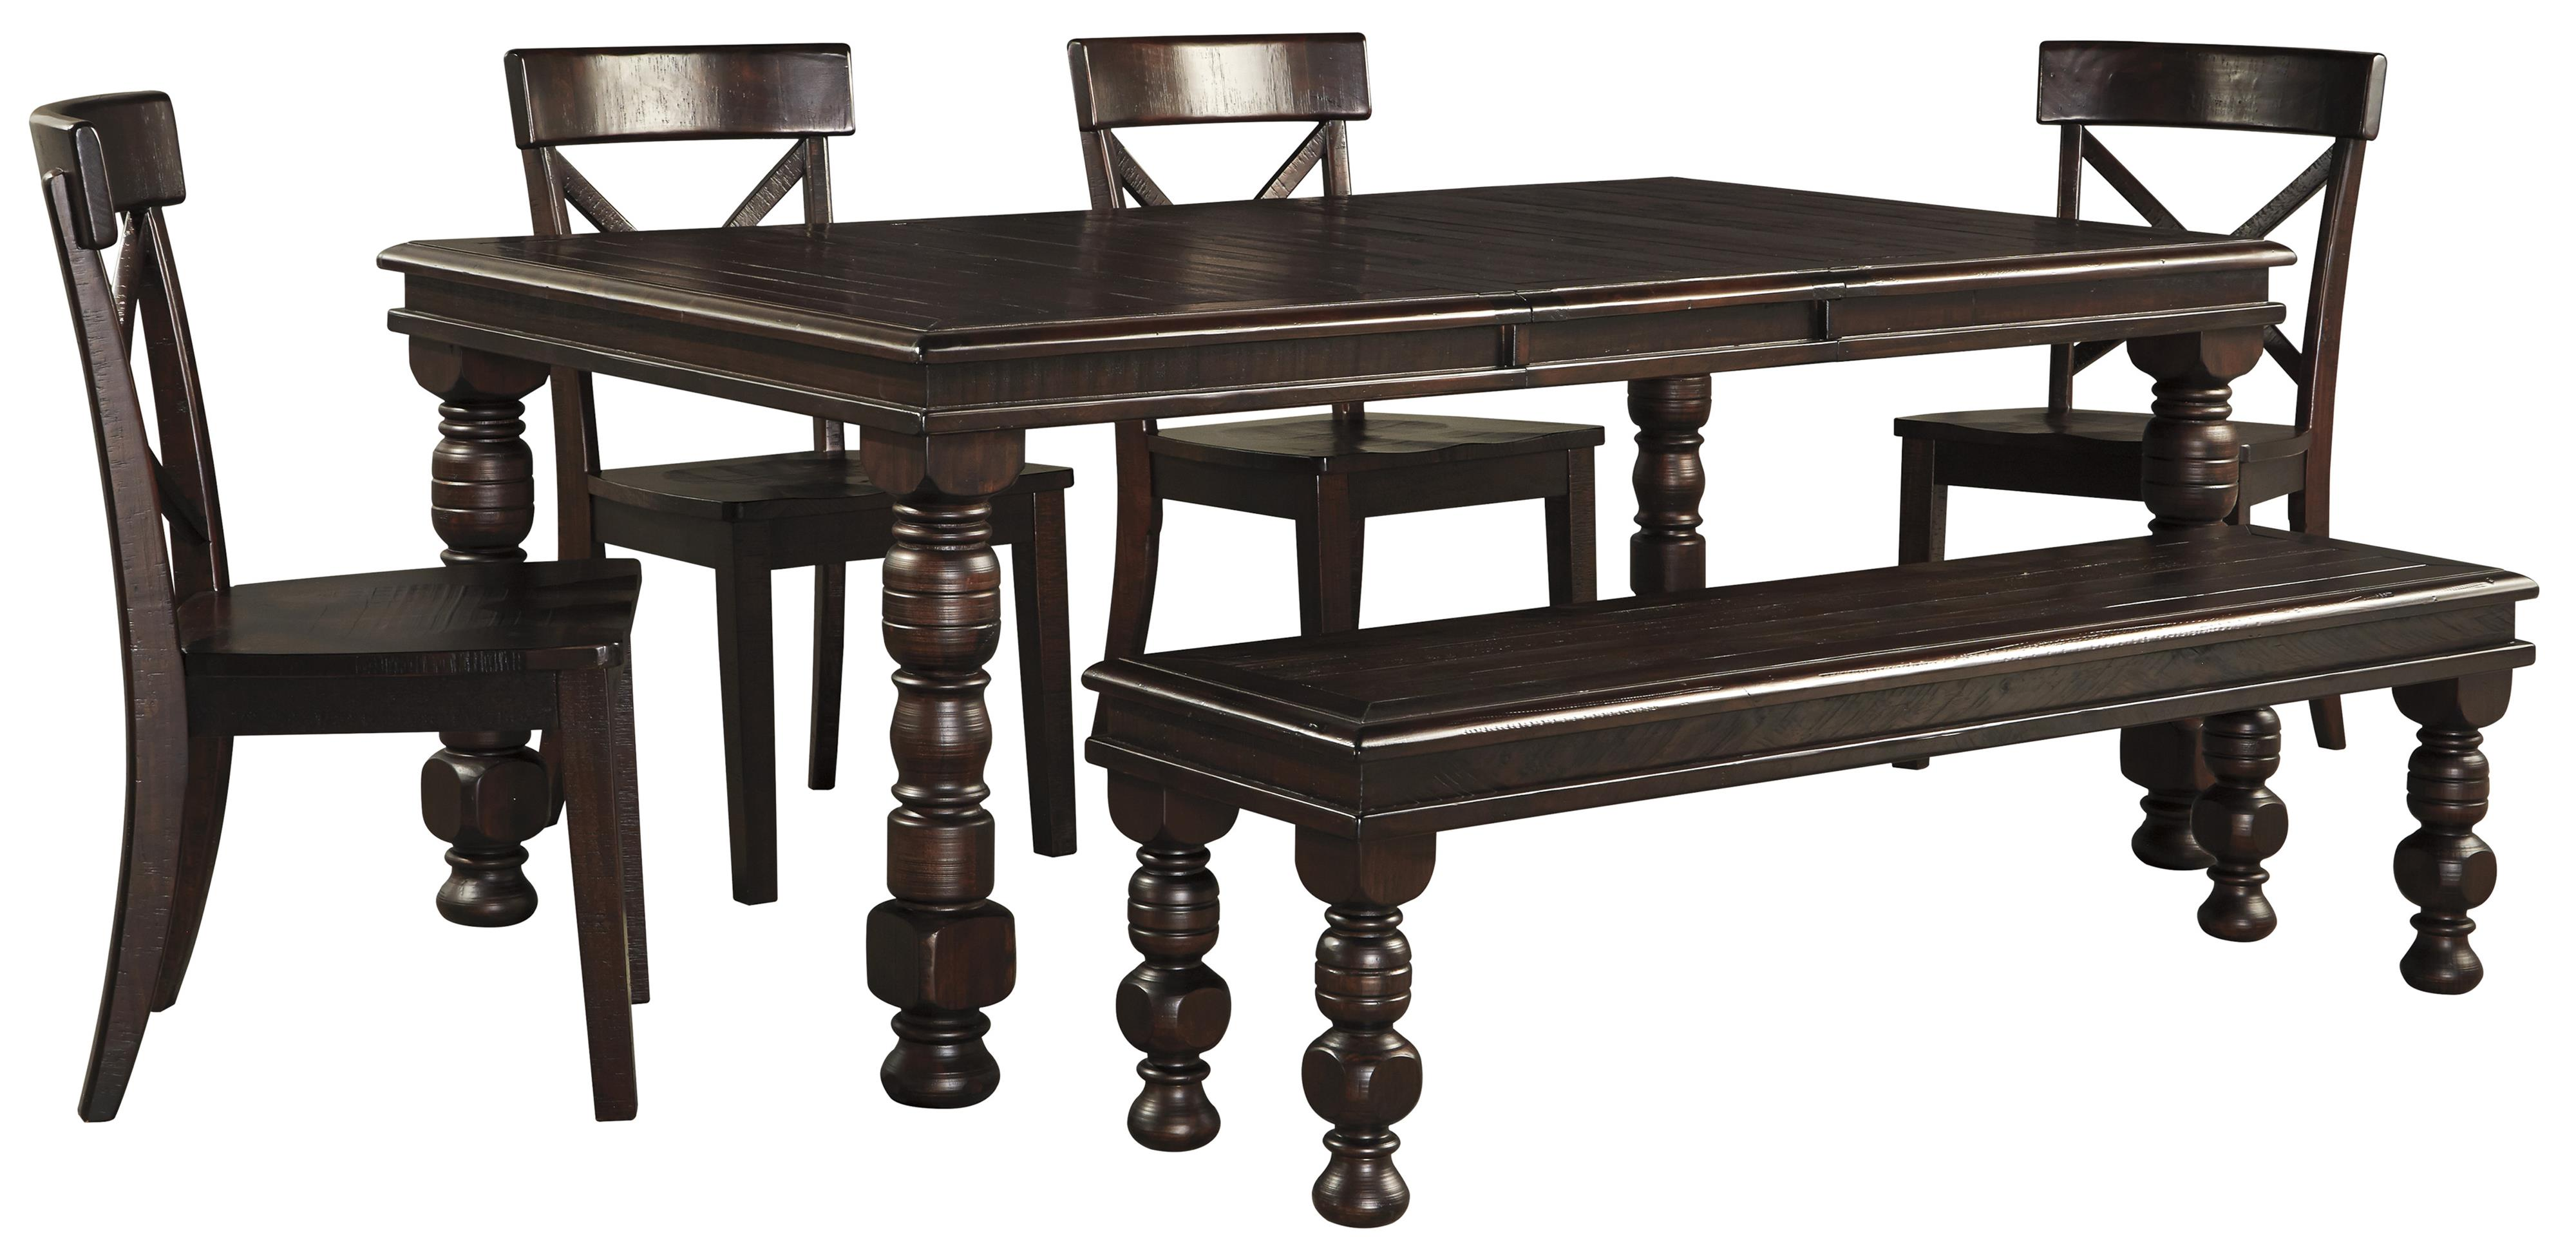 6-Piece Solid Pine Dining Table Set with Bench by Signature Design ...